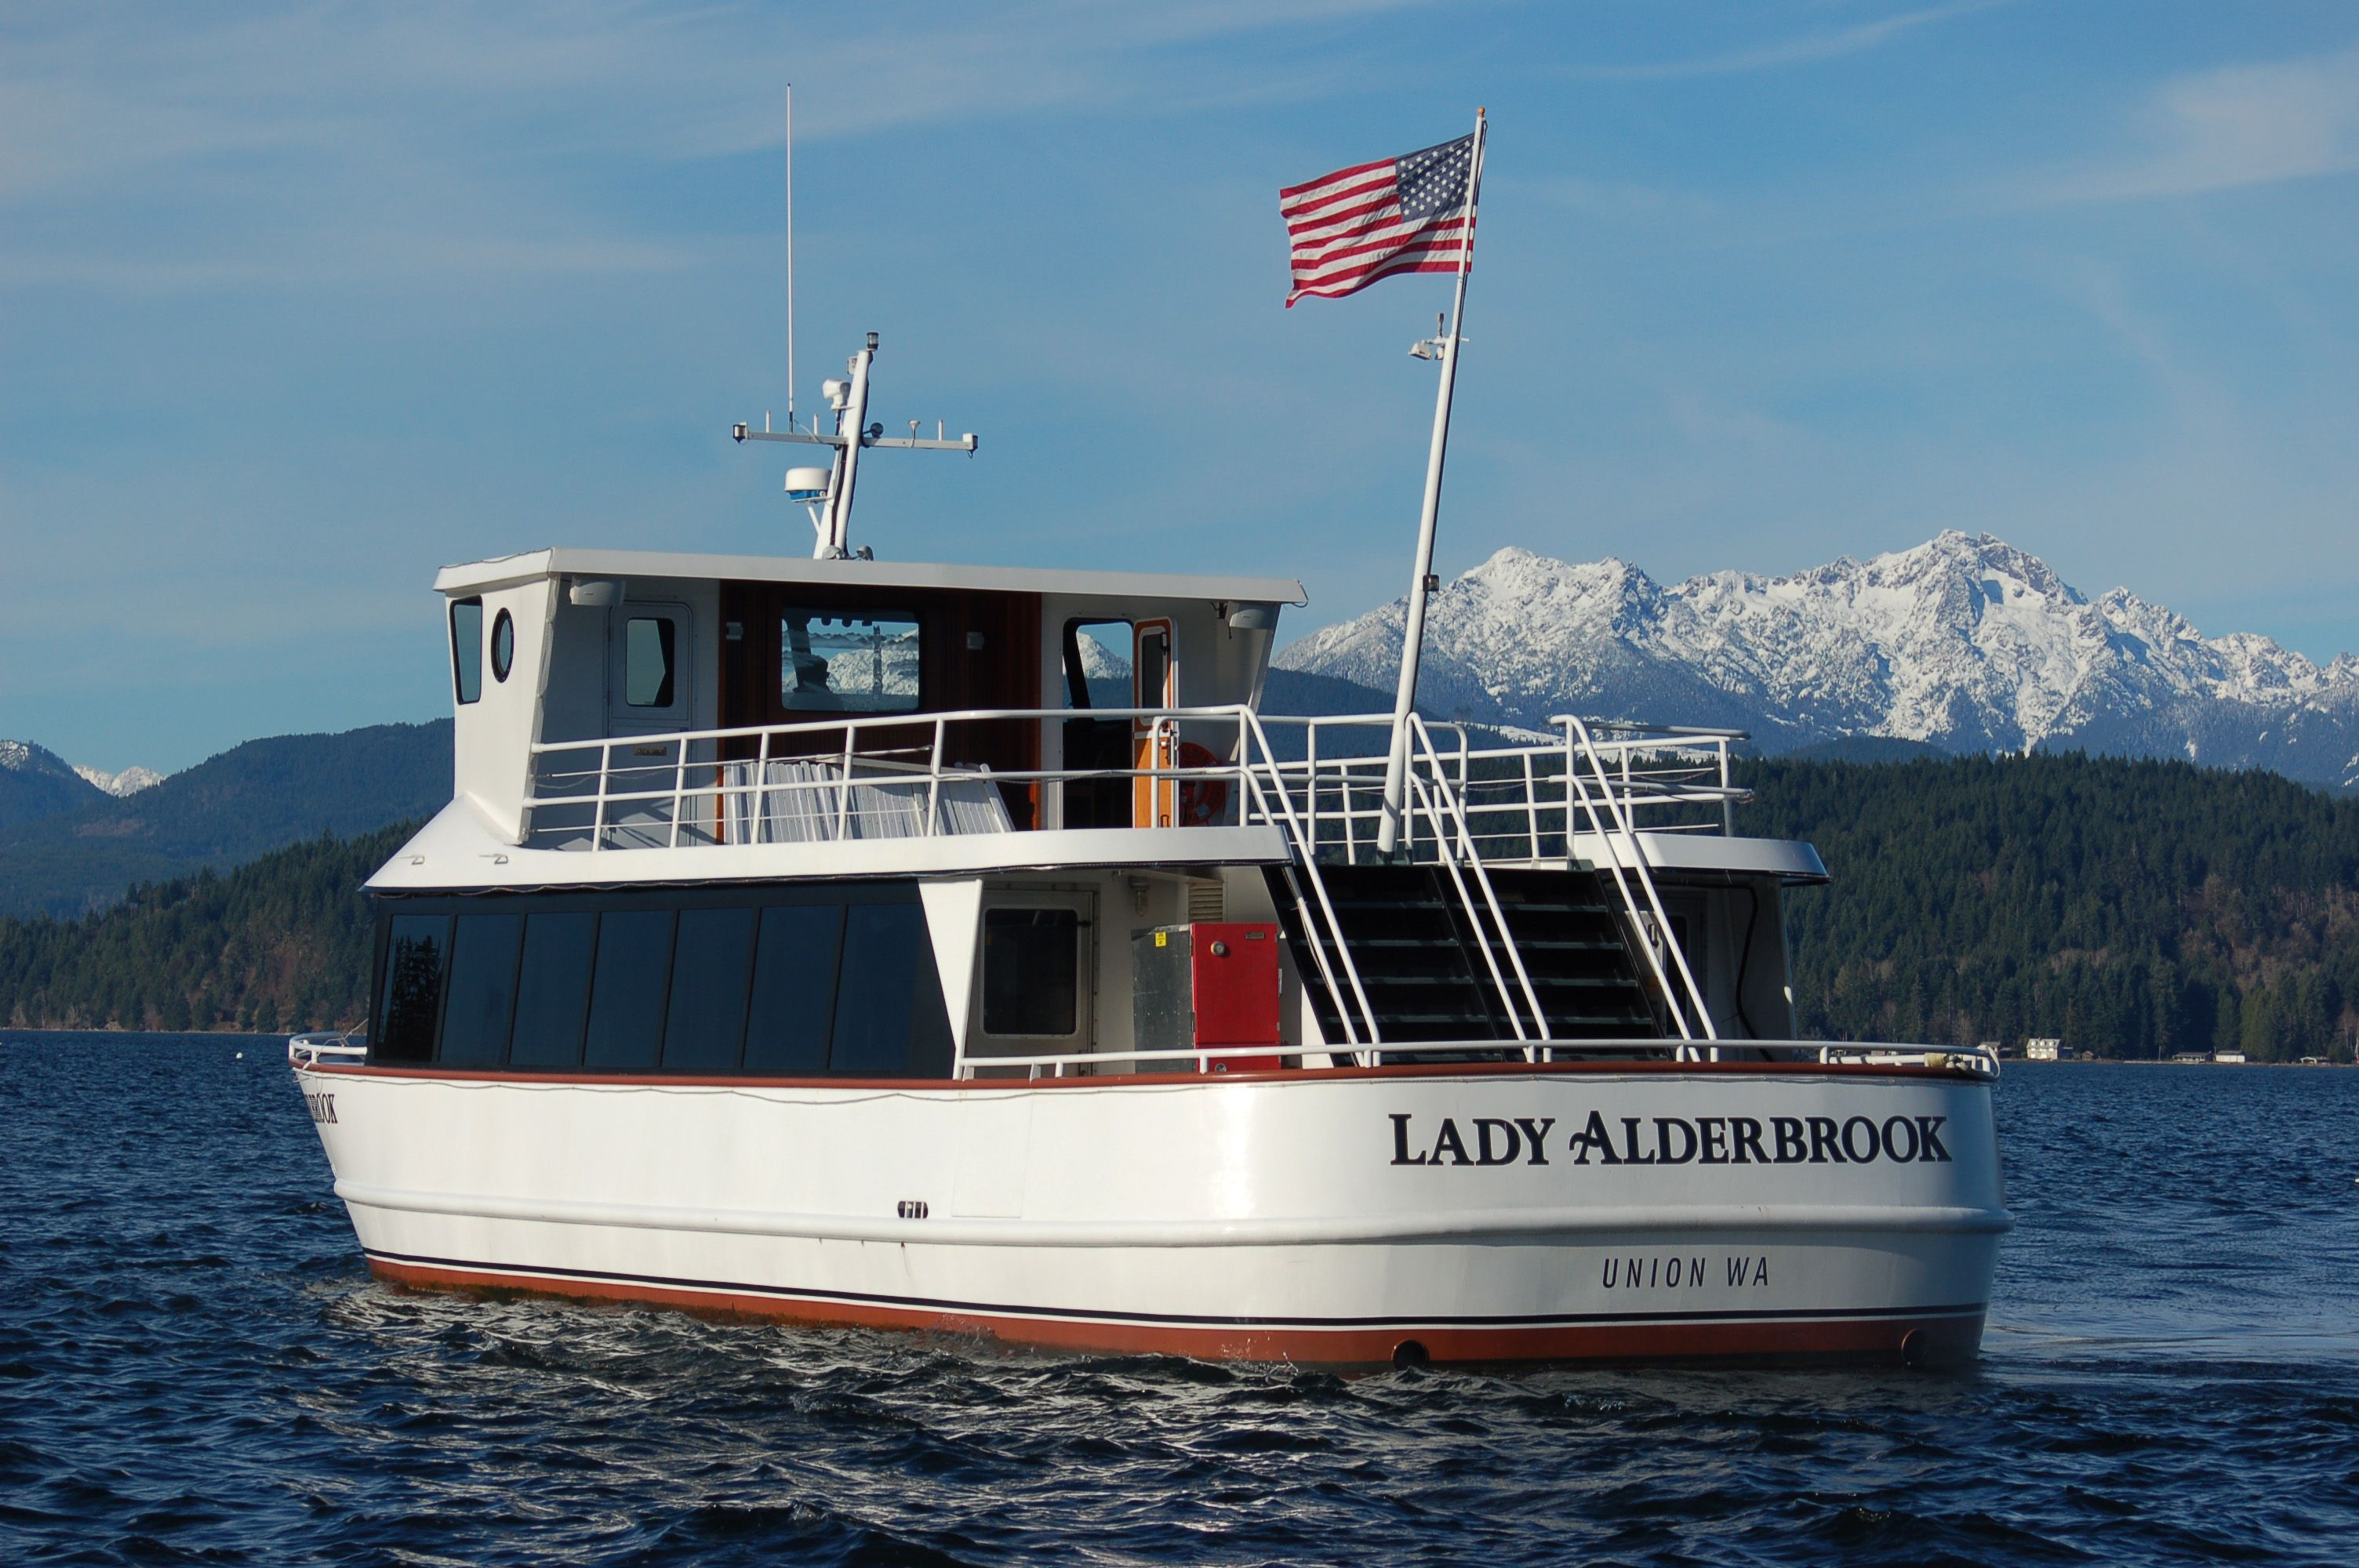 Happy 6th Day of Oyster month!  To celebrate, we're offering complimentary Lady Alderbrook cruises to all overnight guests on Sunday nights in April.  You can watch a family-friendly movie aboard the Lady Alderbrook before dinner!  We'll bring the popcorn, you bring your family and friends.  Lady Alderbrook boards at 5:30PM and returns to our dock at 7PM.  All aboard!  http://www.alderbrookresort.com/area-activities/whats-happening/#ap  #alderbrook #hoodcanal #oystermonth #ladyalderbrook